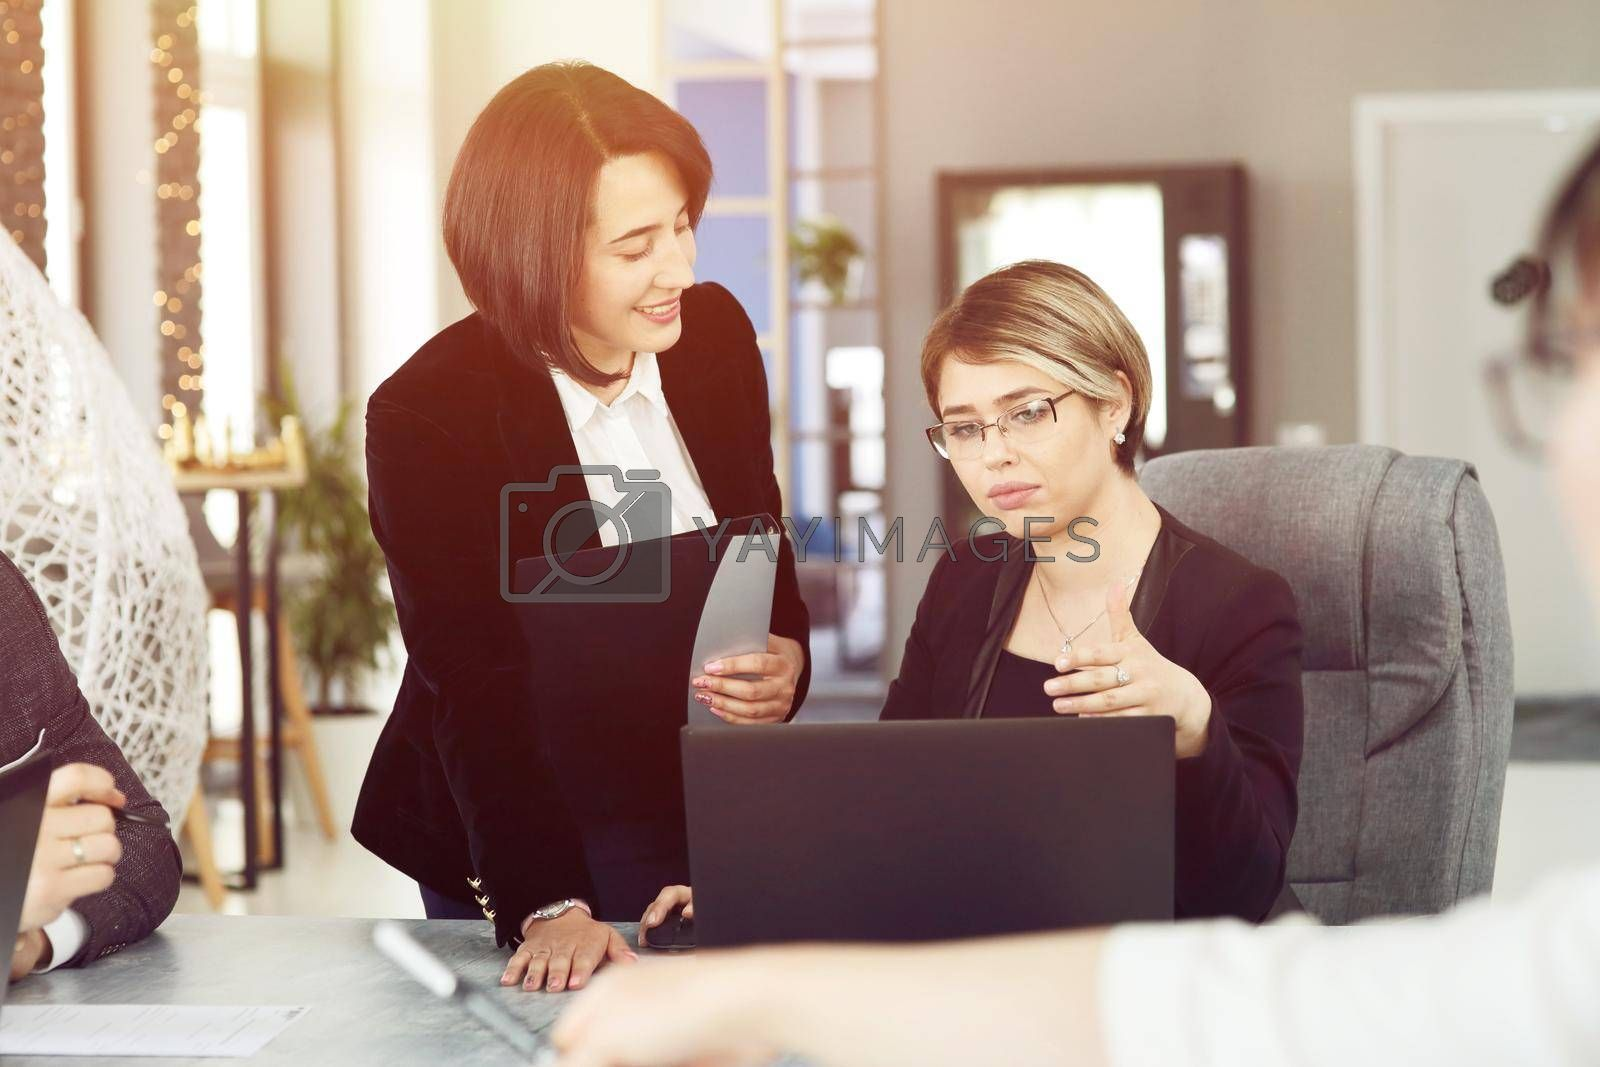 Royalty free image of Two young business women in the office, analyzing information looking into a laptop and smiling by selinsmo